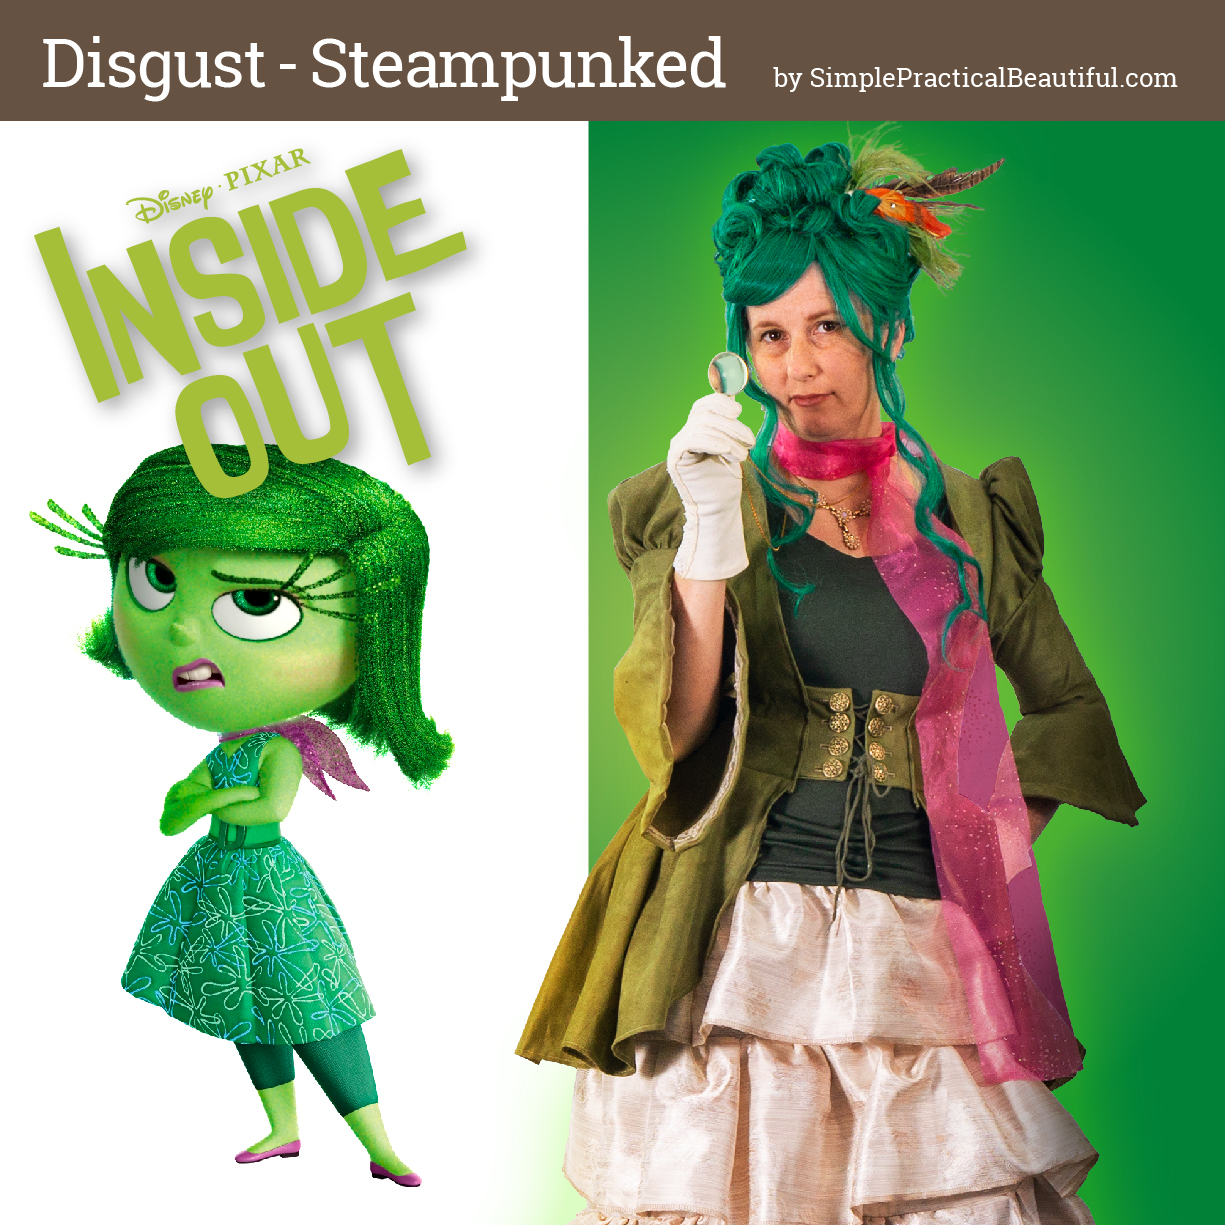 Disgust from Disney Pixar's Inside Out inspires a steampunk costume for cosplay